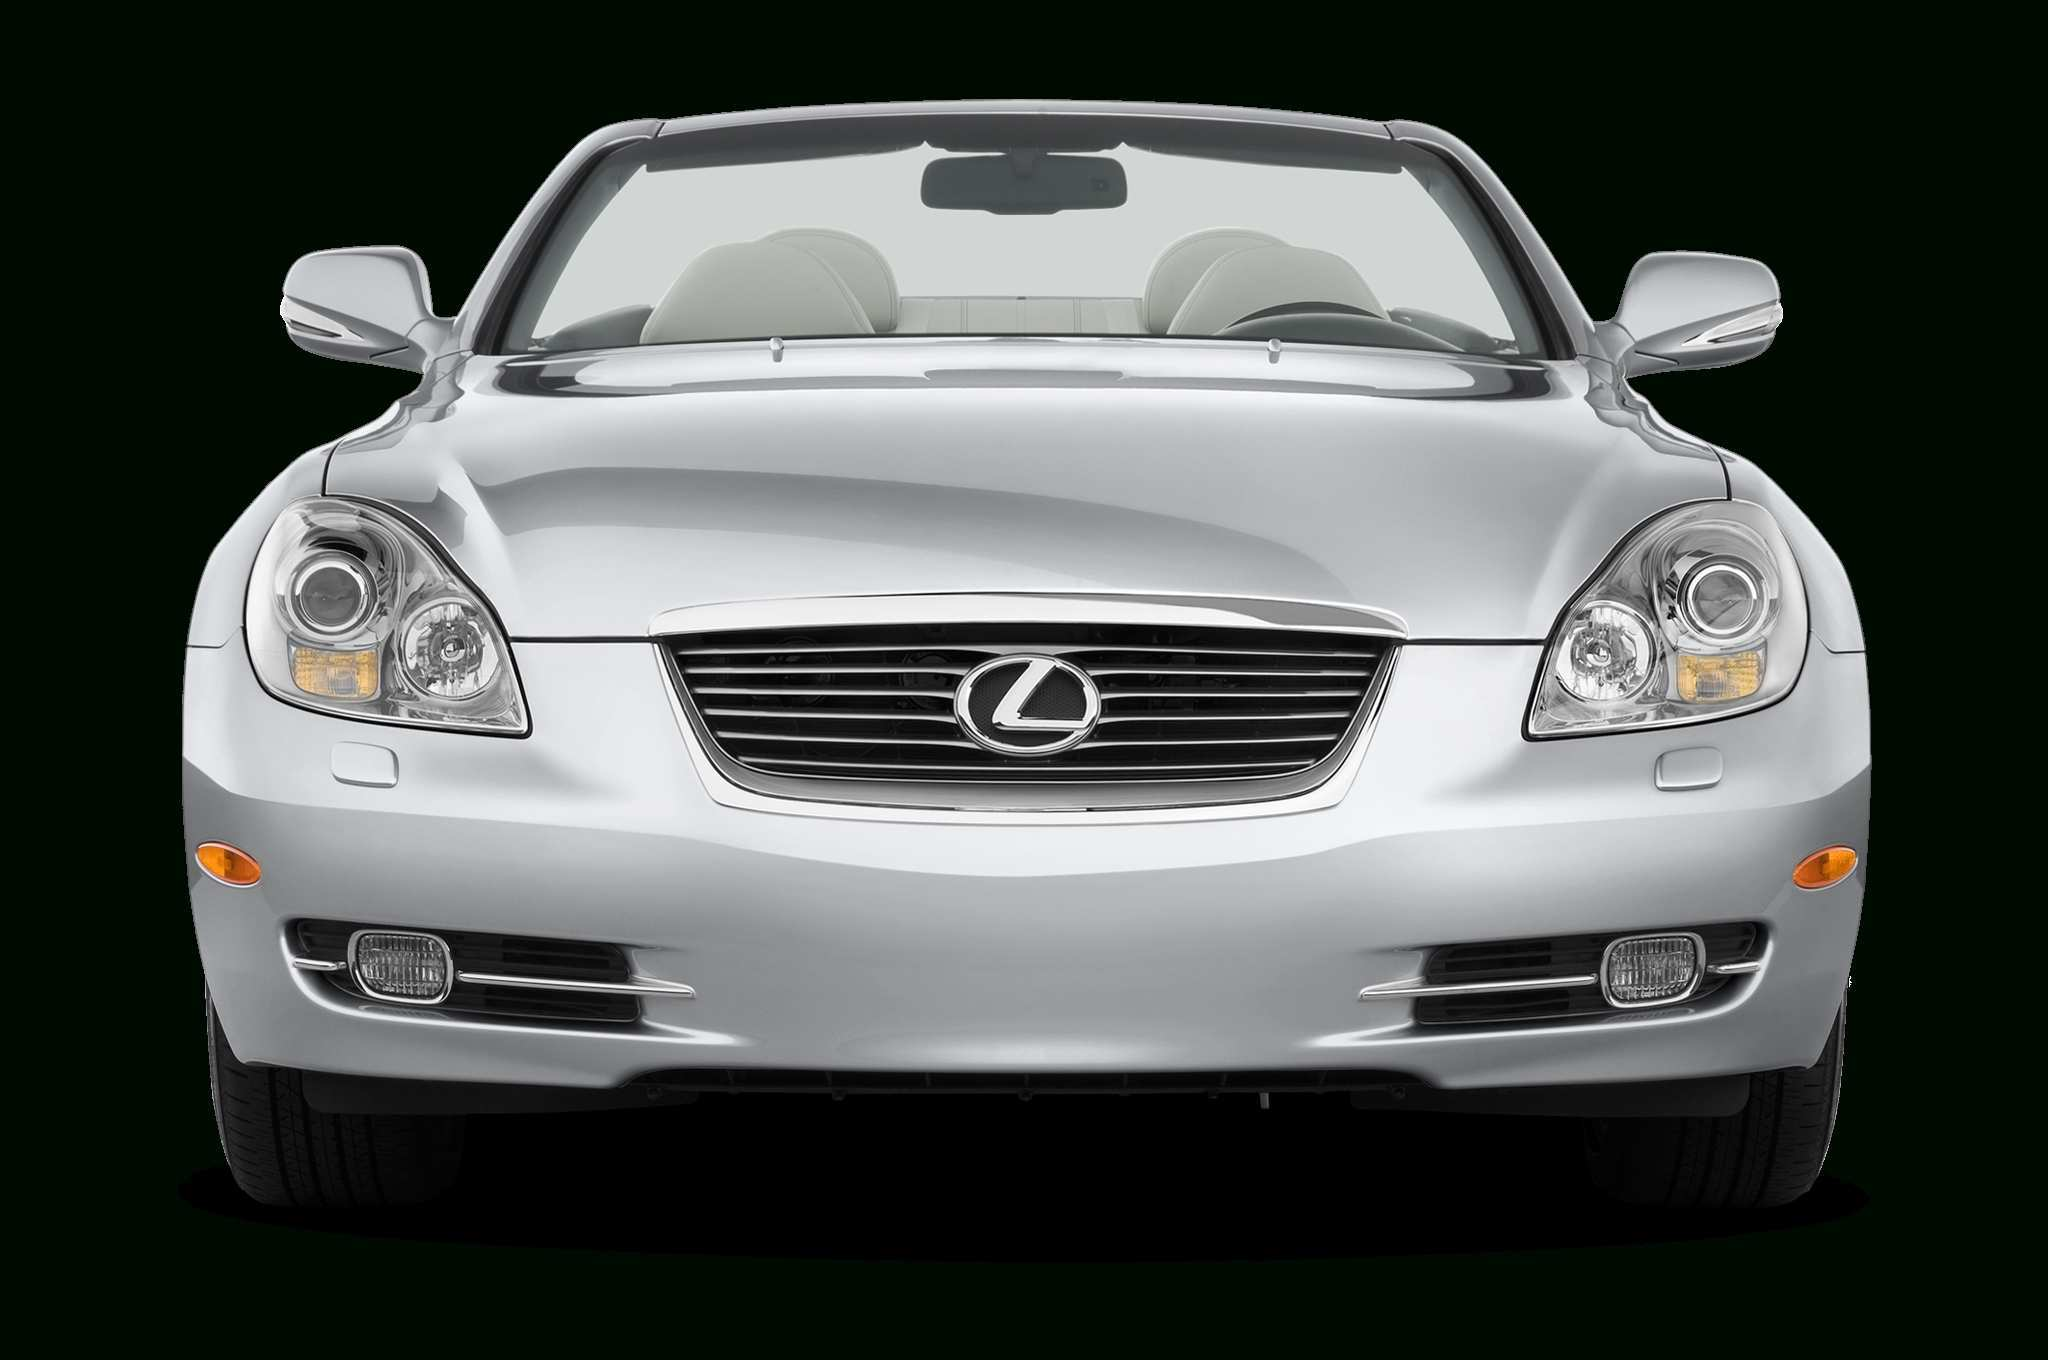 62 The Best Lexus Sc 2020 Review and Release date